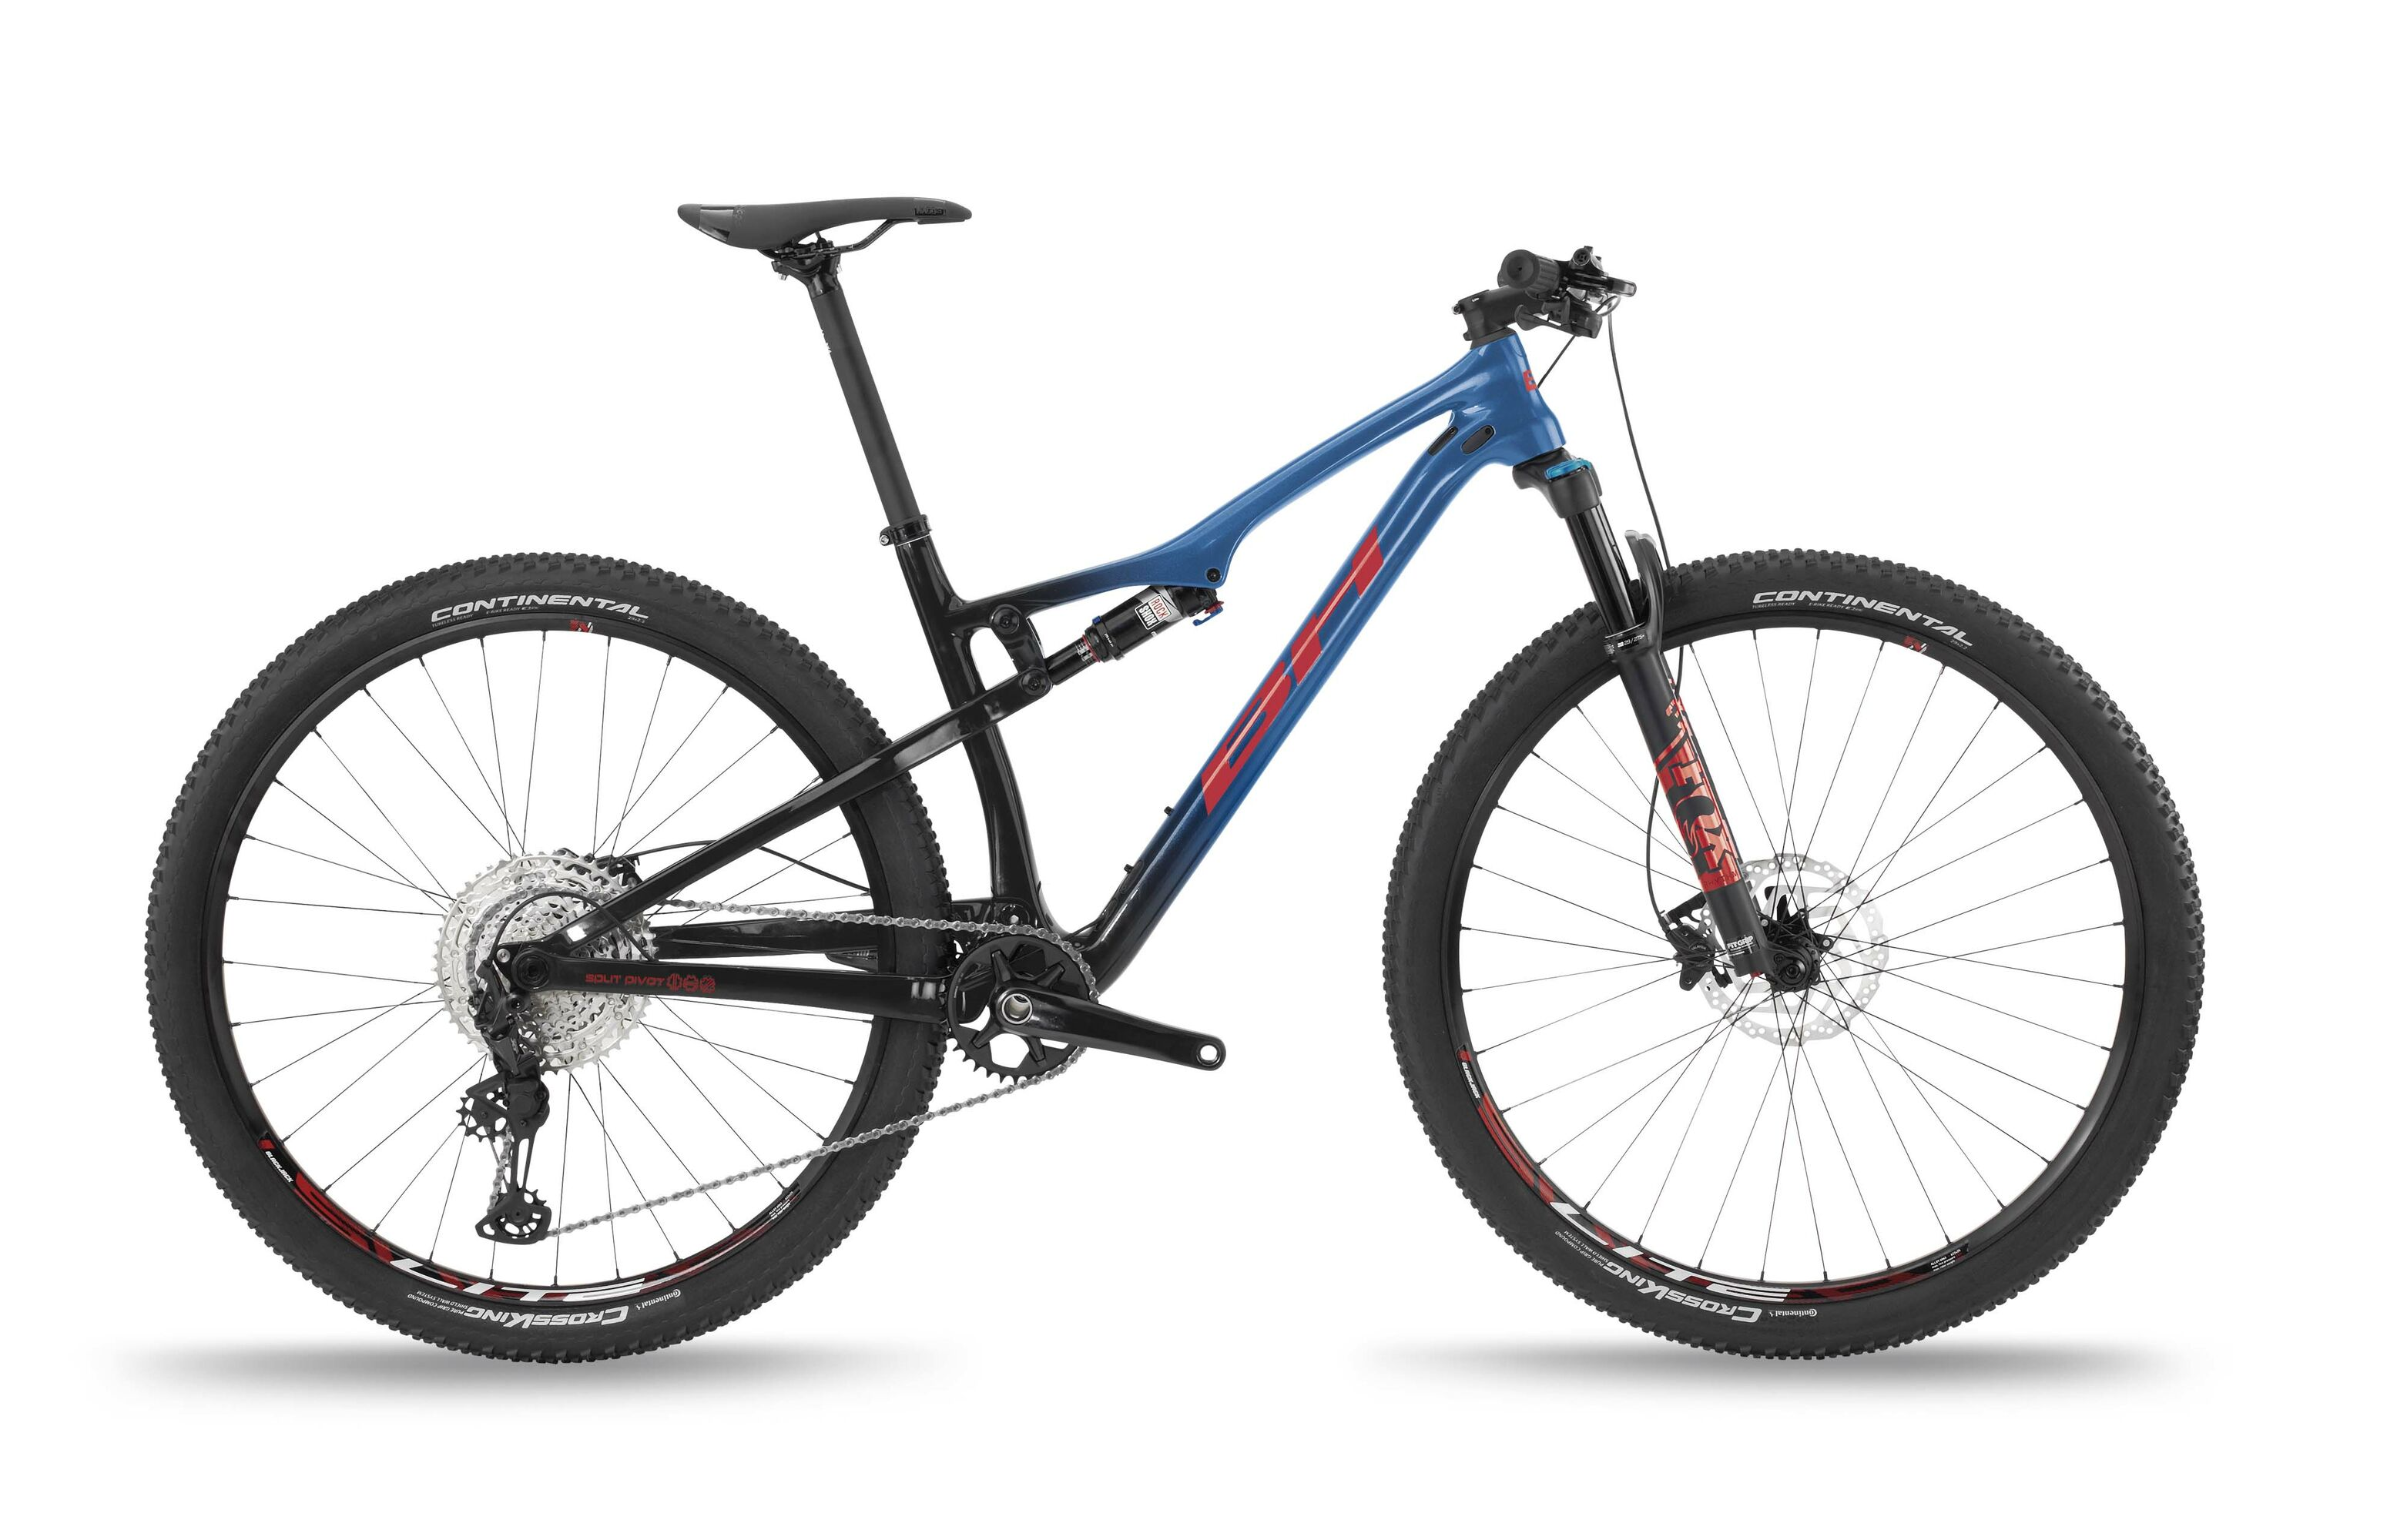 LYNX RACE CARBON RC 6.0 - BH Bikes